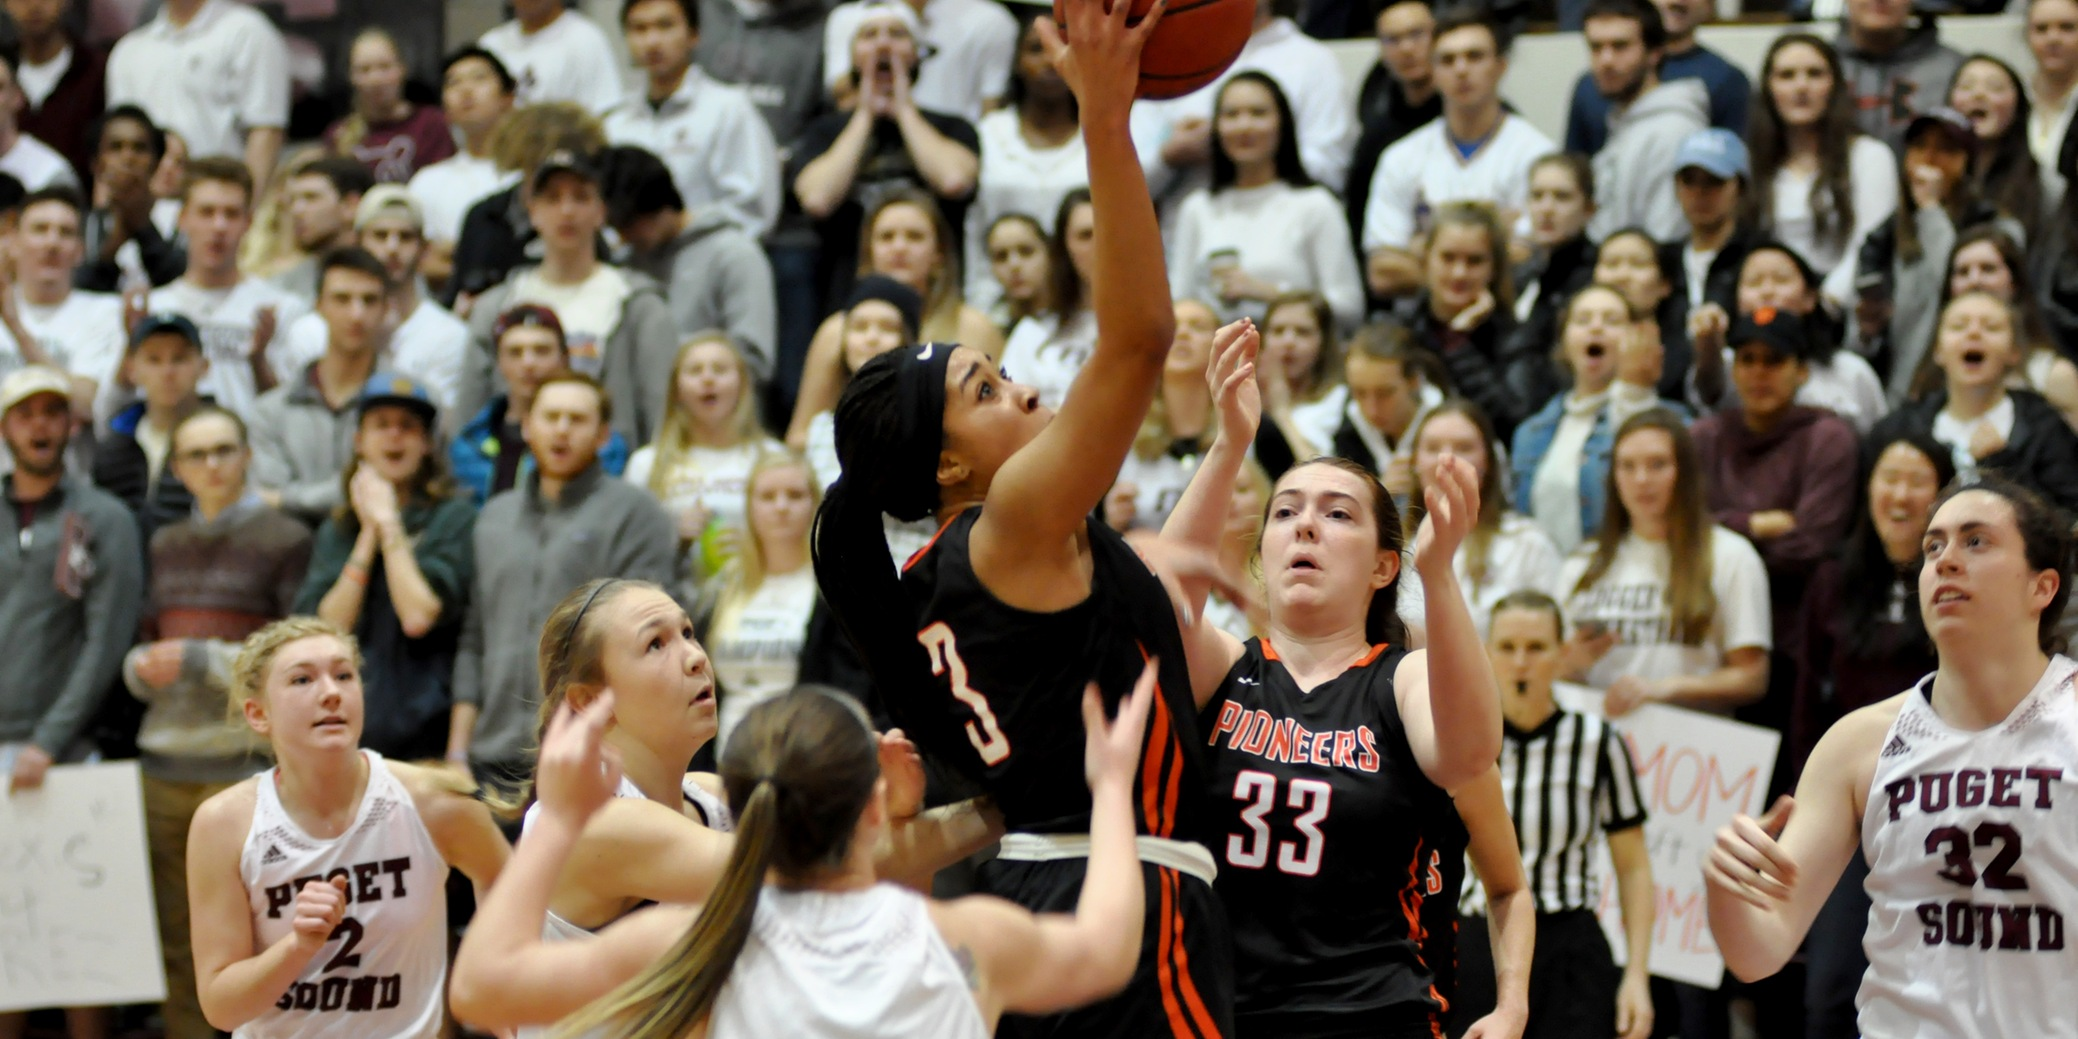 Lewis & Clark ends season with heart-breaking loss in NWC tournament